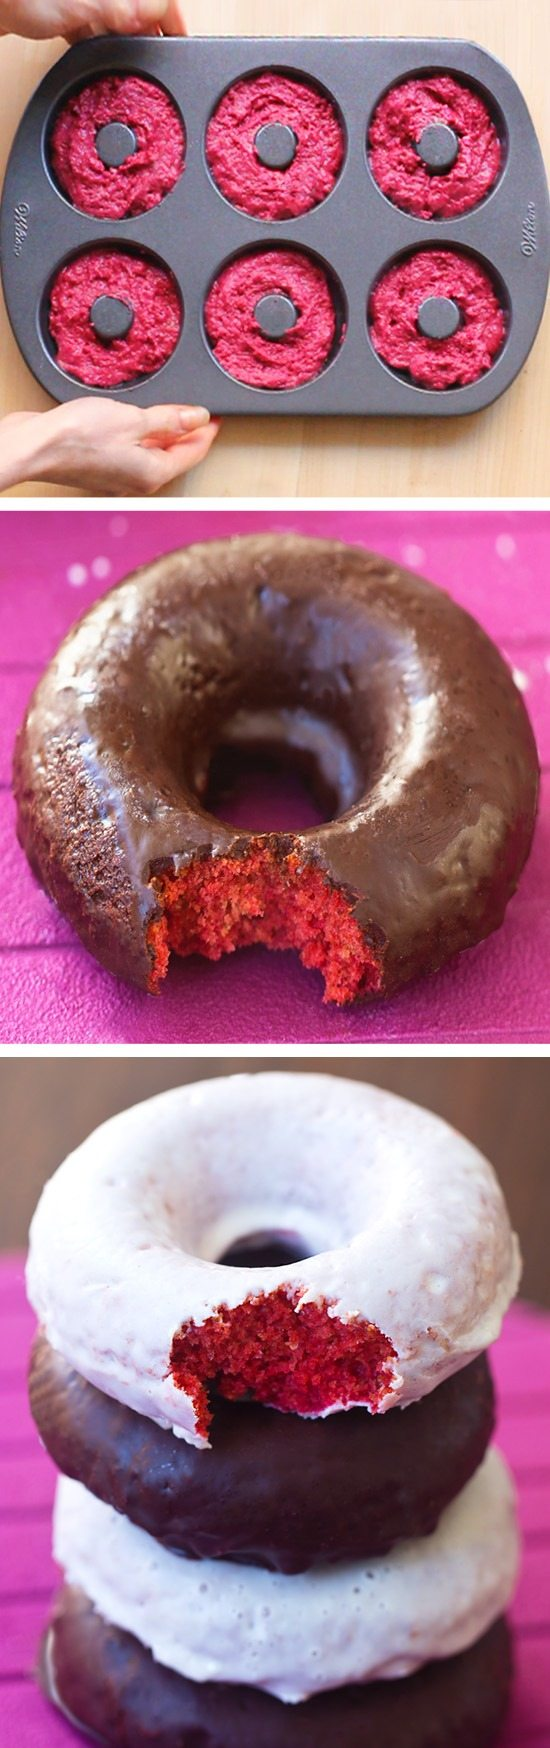 A good-for-you alternative to Dunkin Donuts, they are baked instead of fried and have no food coloring or refined sugars!